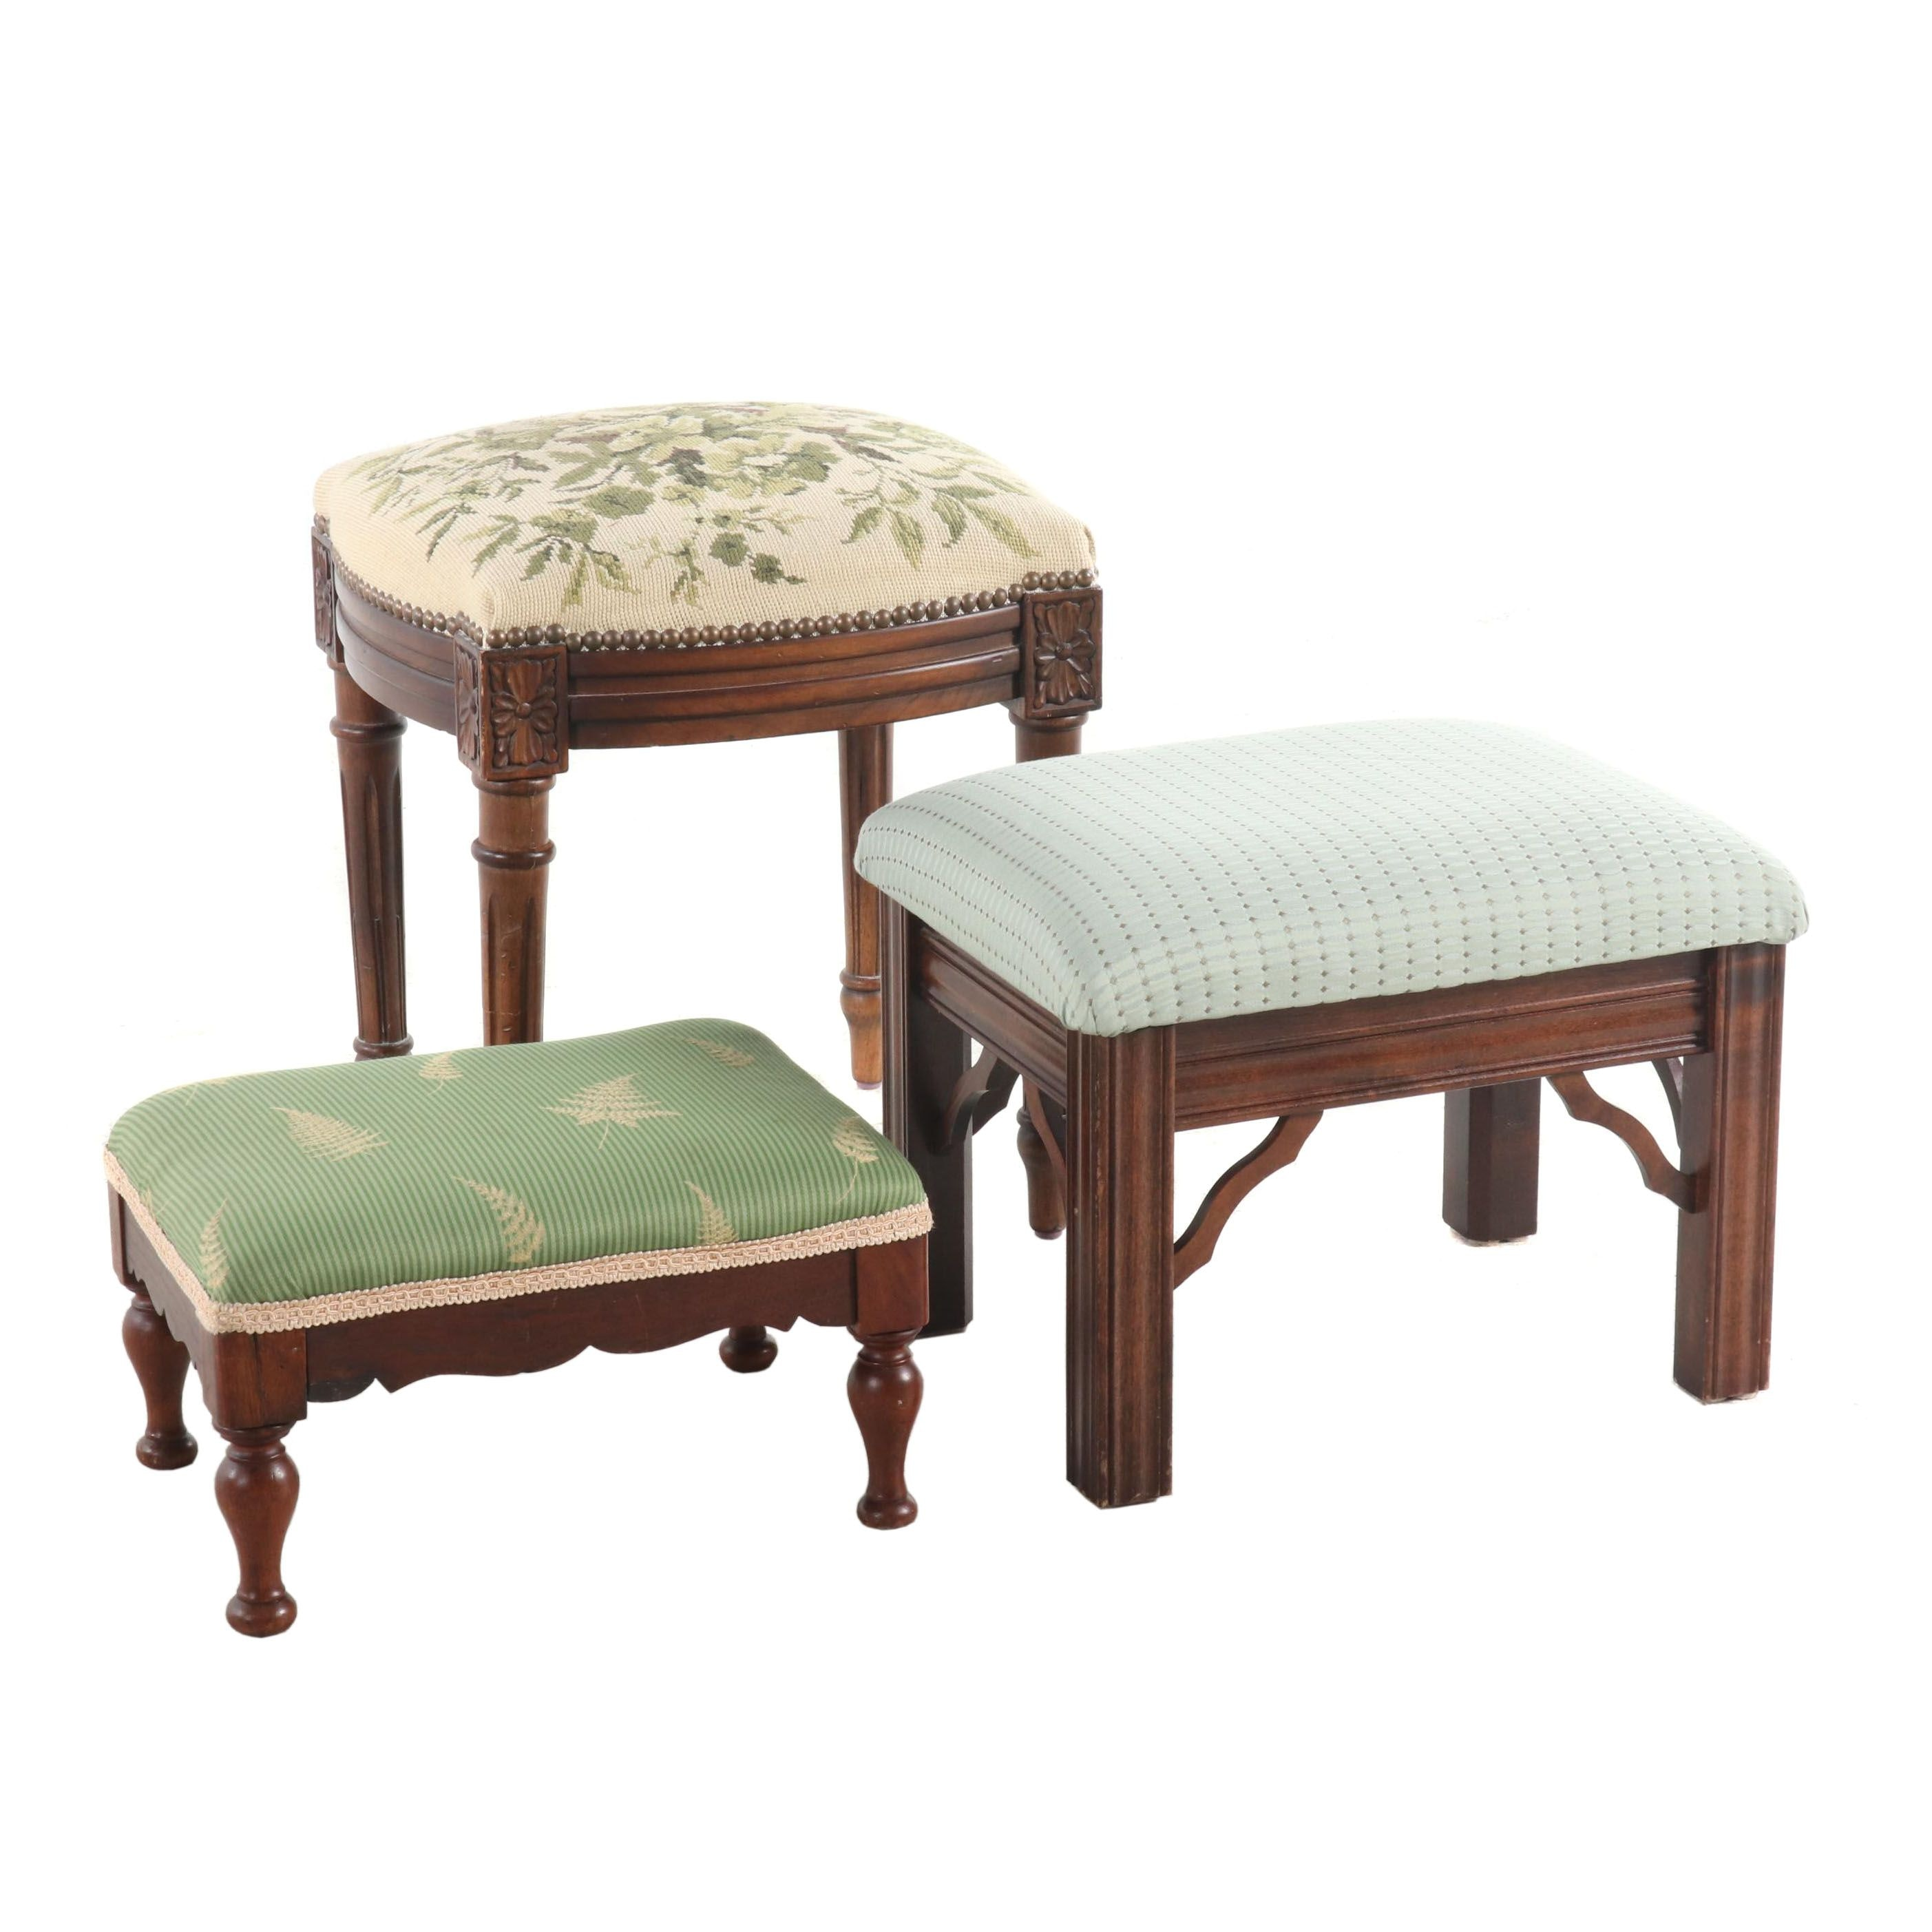 Three Various Wood and Upholstery Footstools, 20th Century